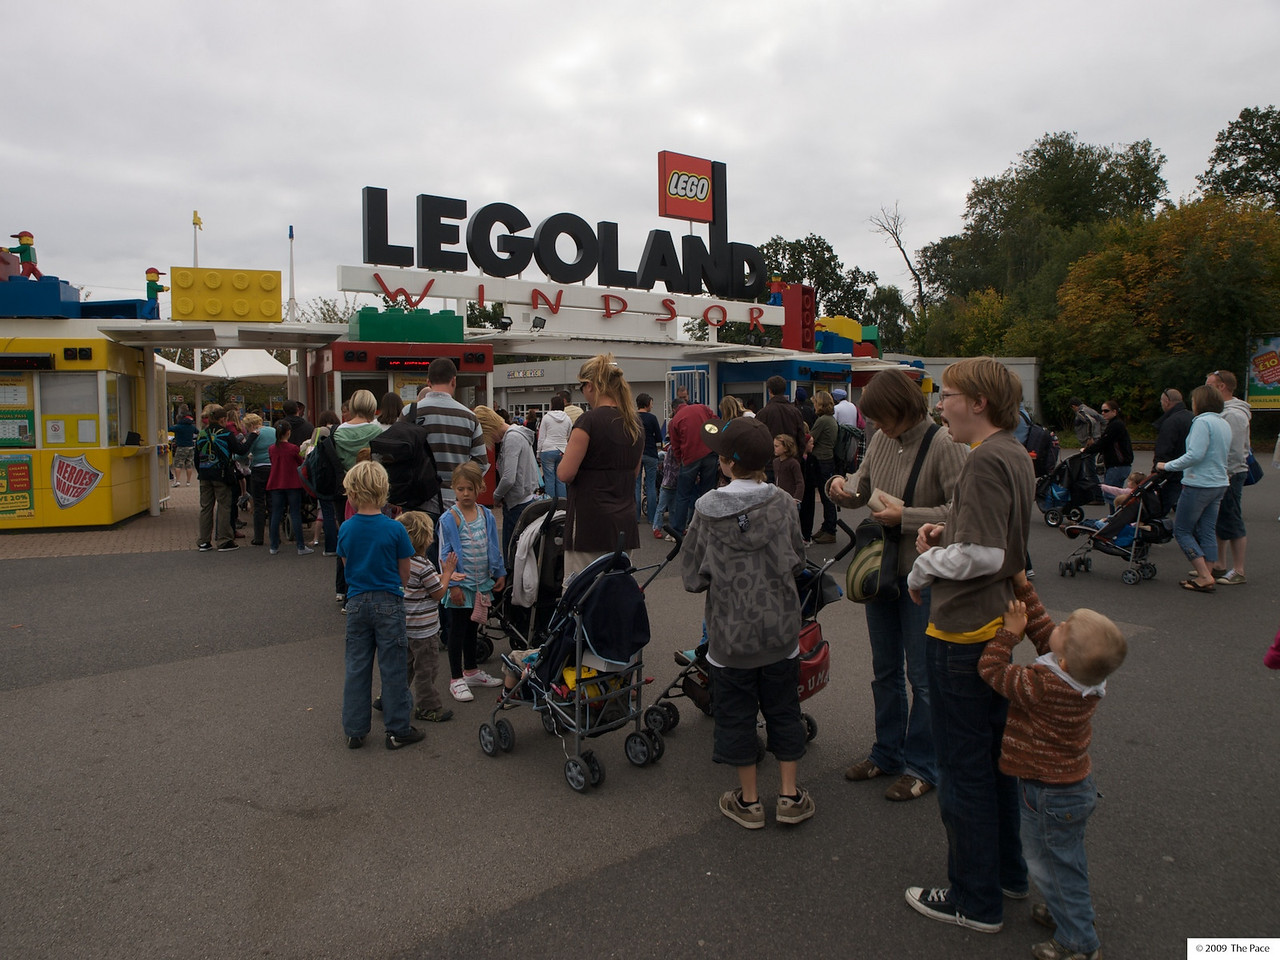 Monday 11th Oct 2009 - Cai loved legoland but it was a bit boring for the bigger boys